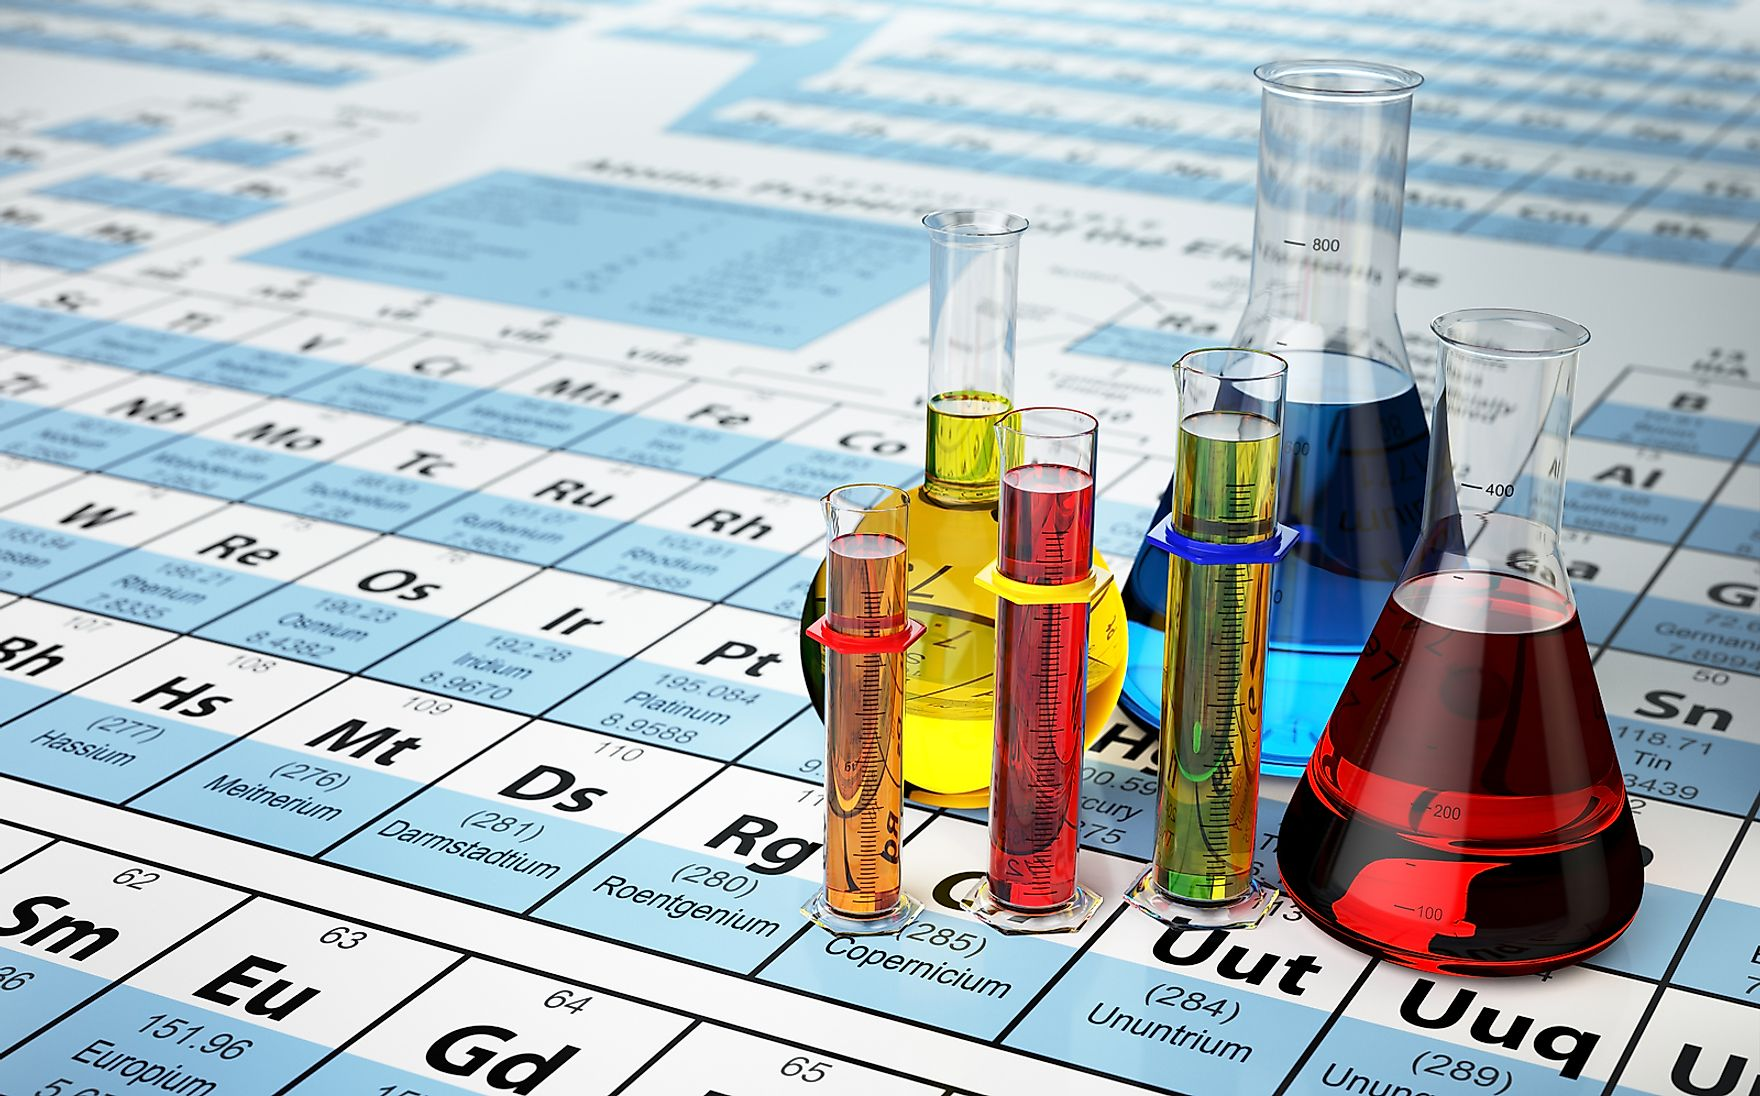 Periodicity has applications in fields of science, such as chemistry.